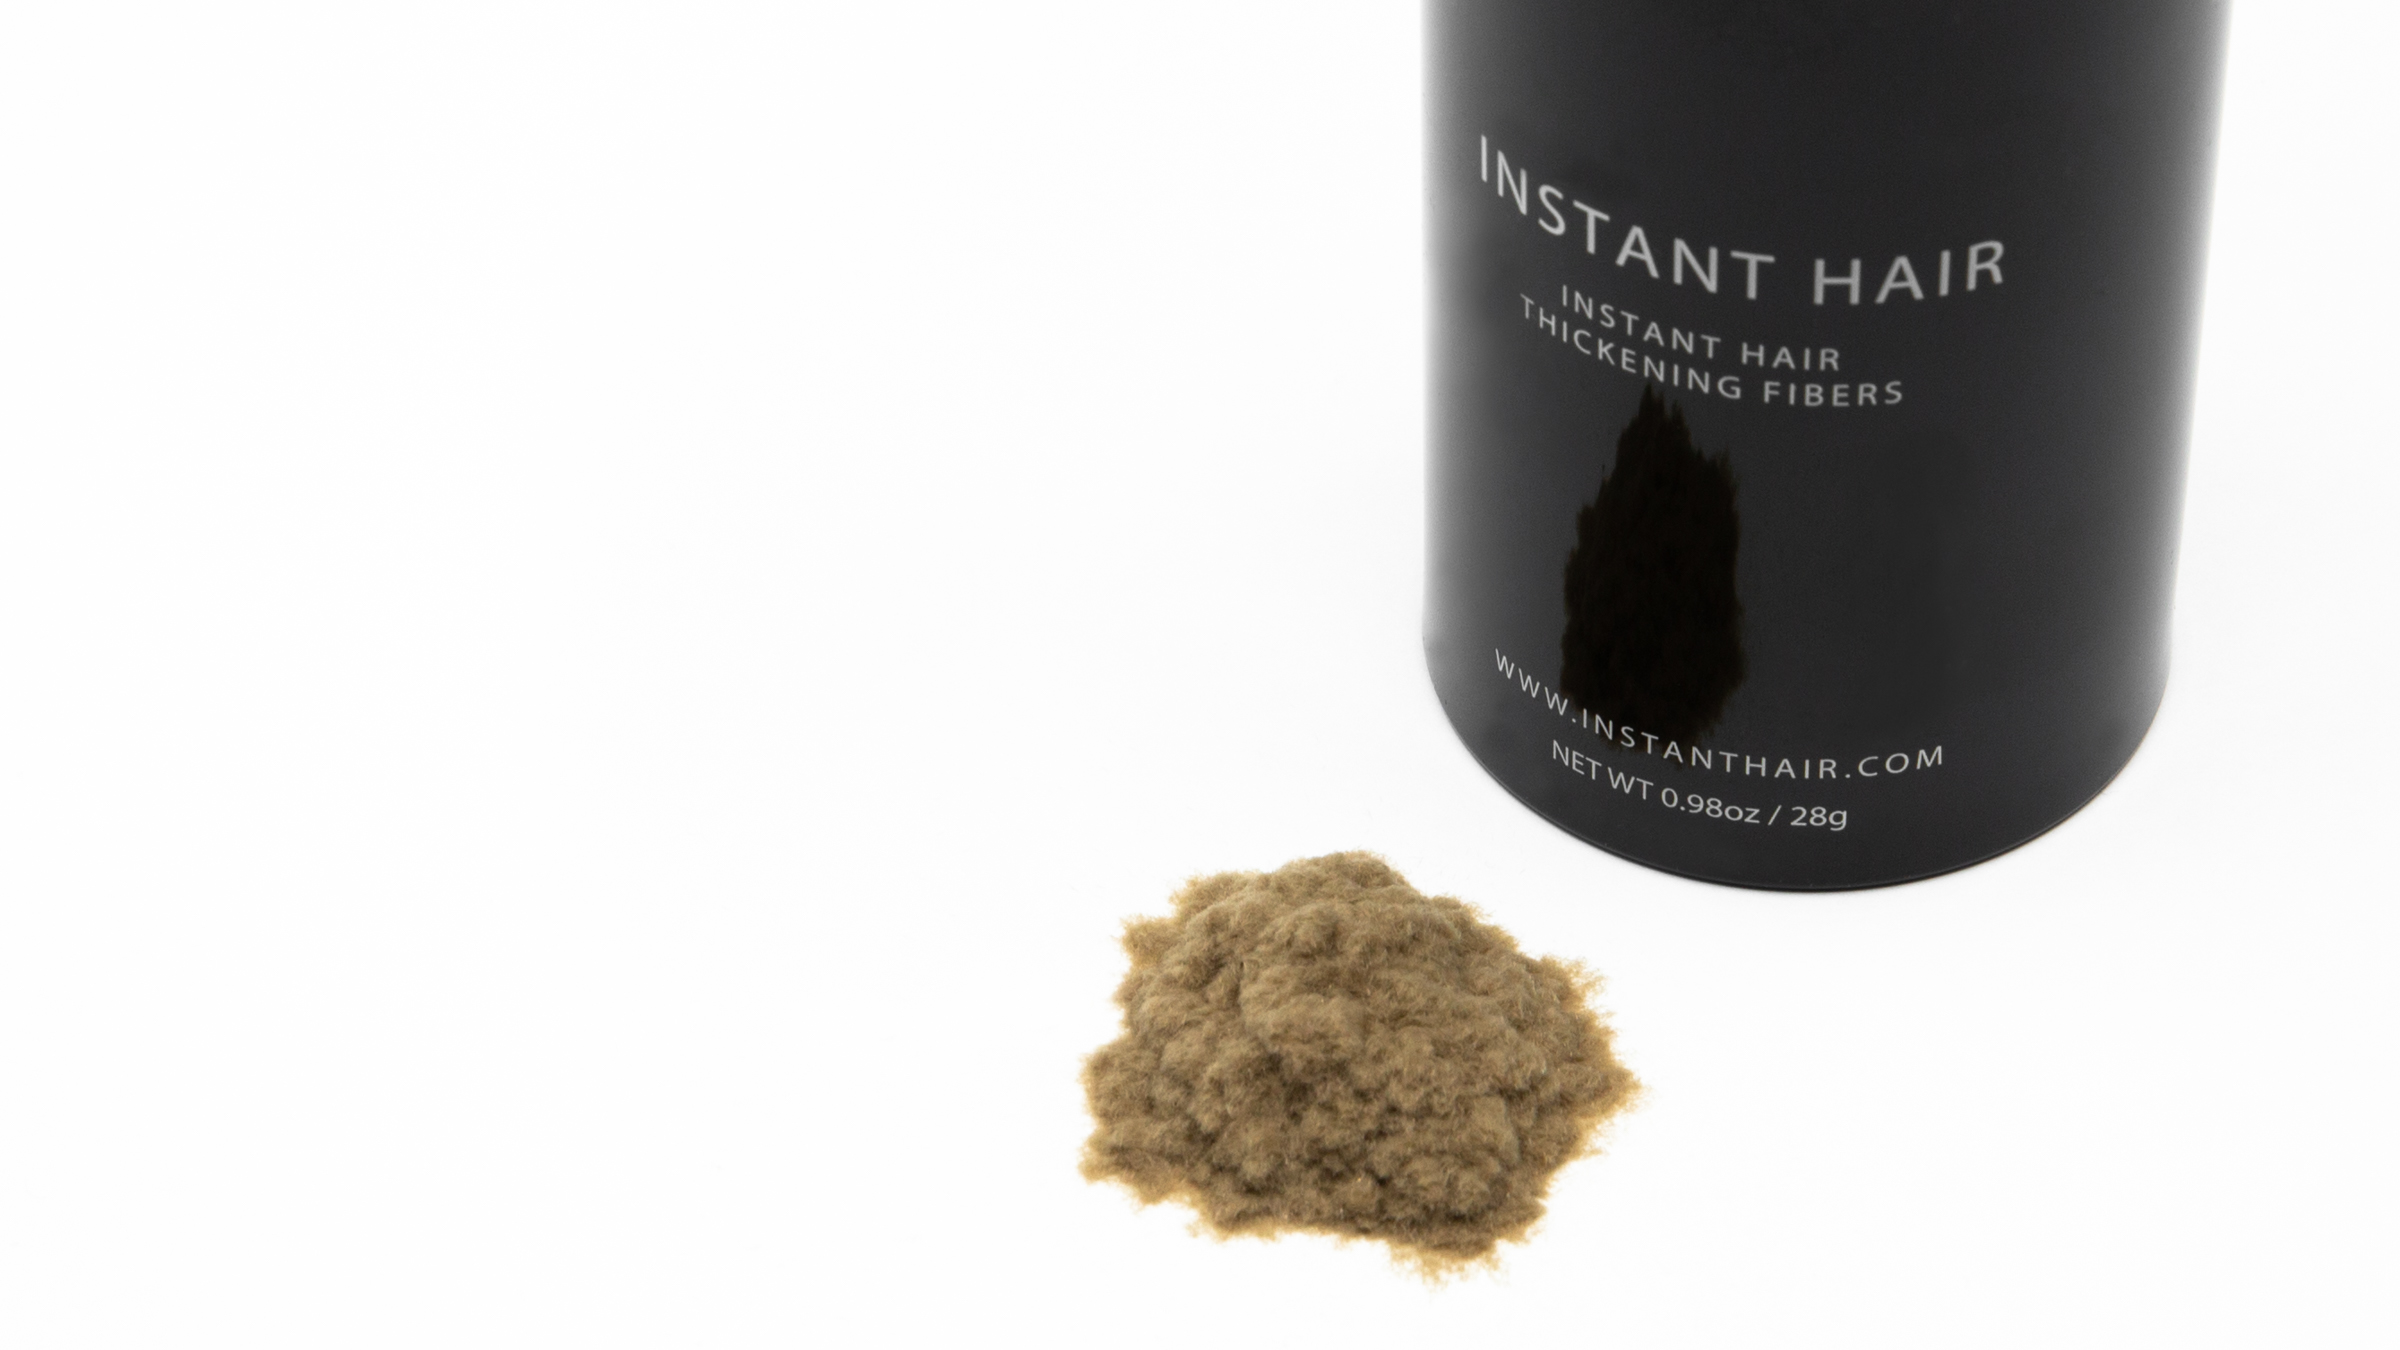 Instant Hair FAQ's - Bottle with Fibres